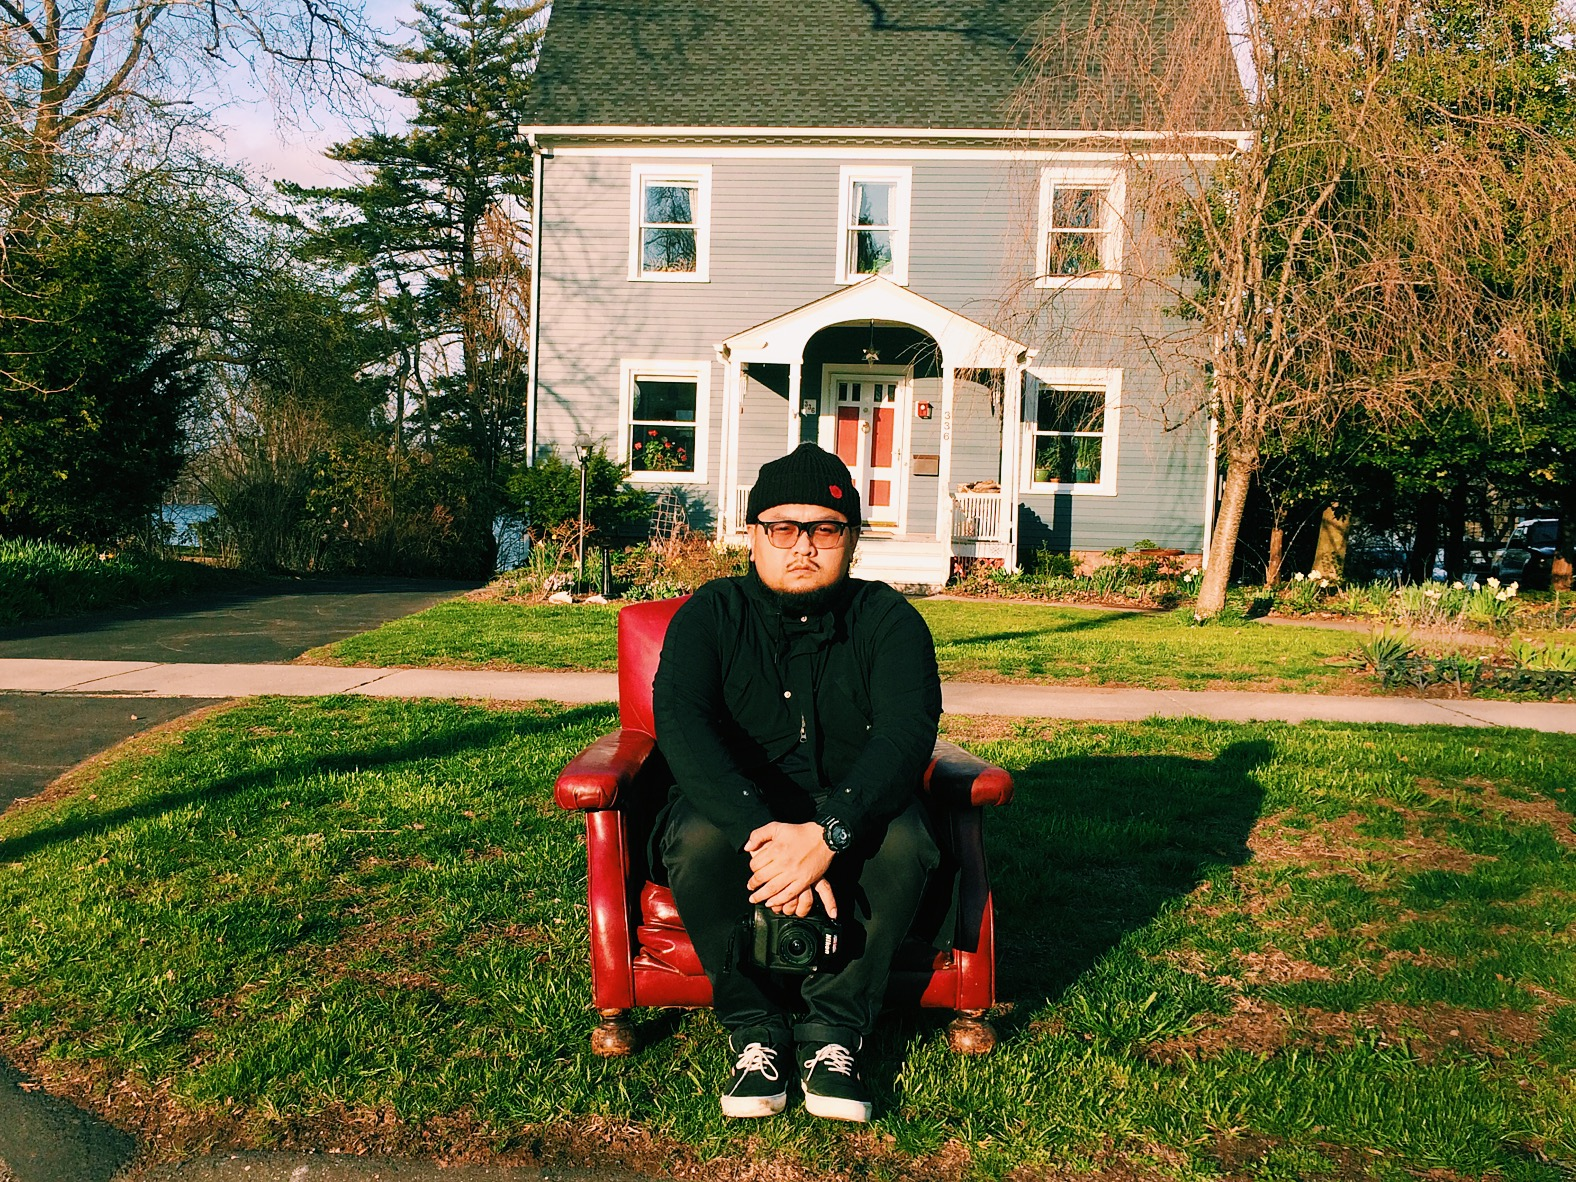 Found a red chair in someone's front yard and had to pull over for a photo.